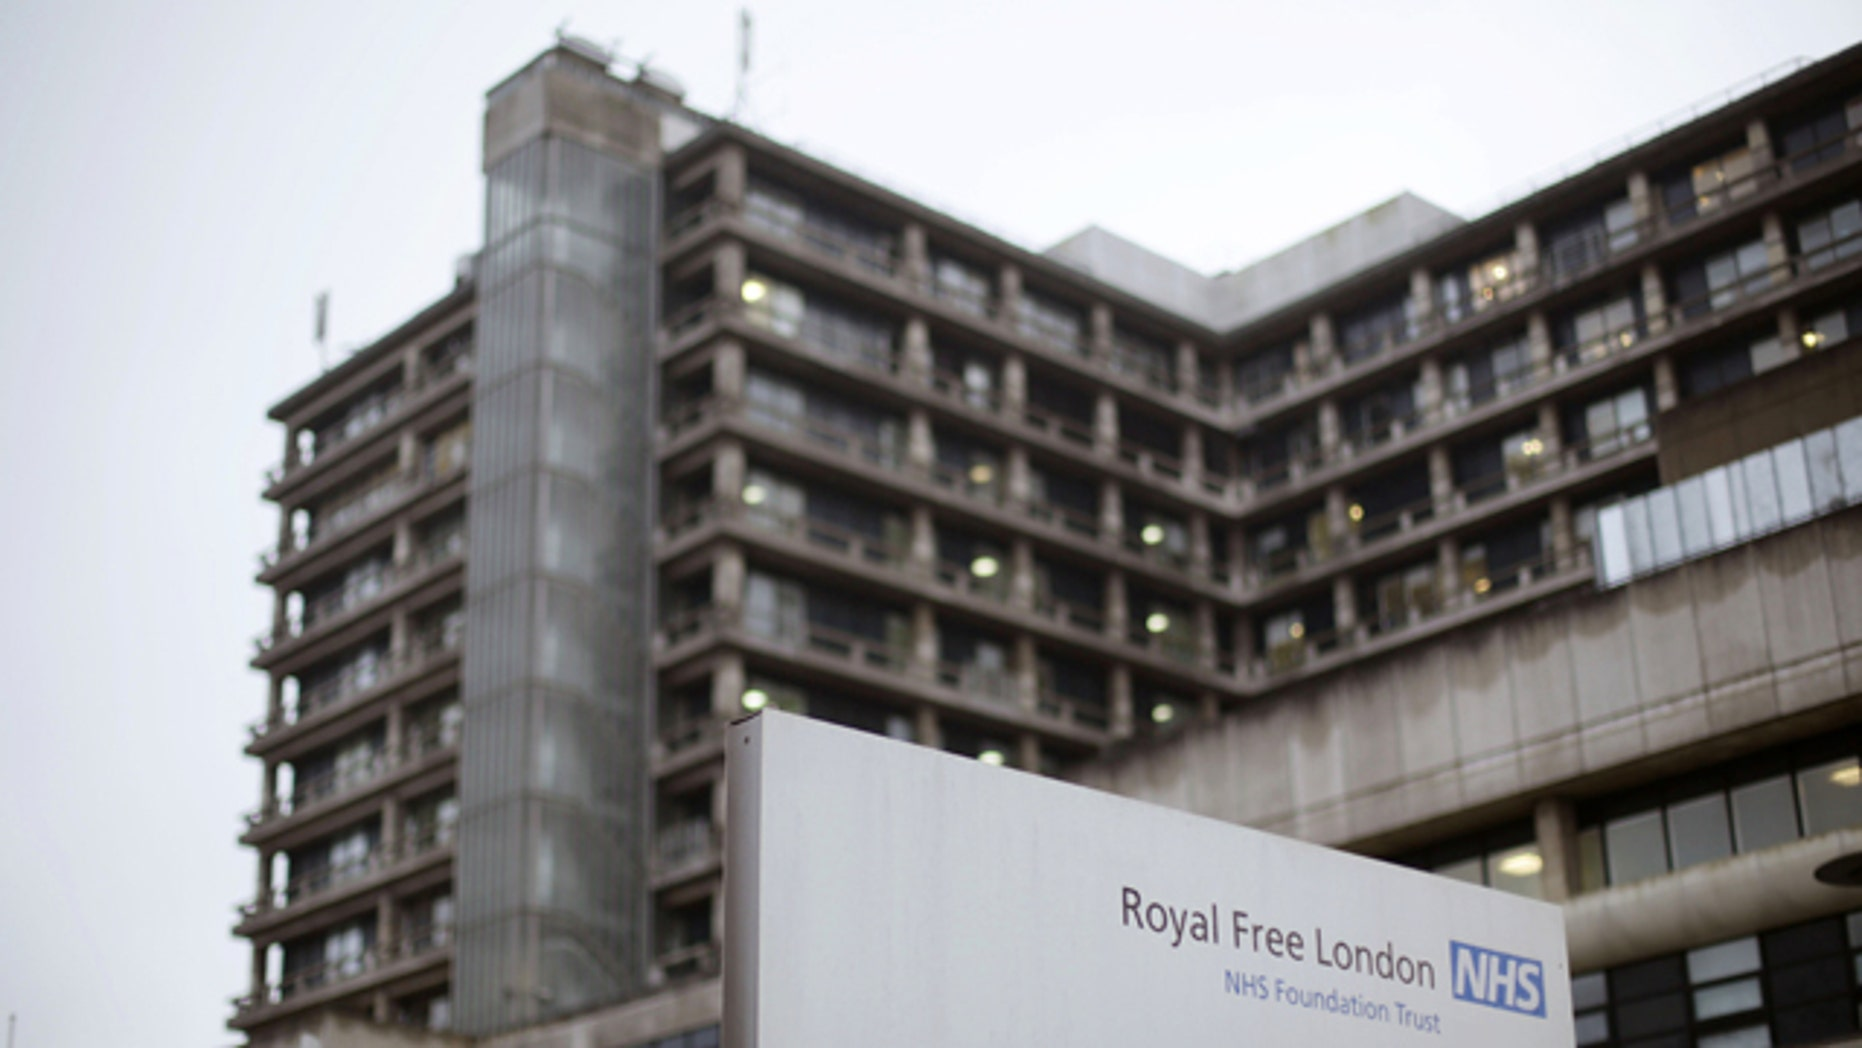 Jan. 3, 2015: The Royal Free Hospital in Hampstead. Pauline Cafferkey, the first person diagnosed with Ebola on British soil, is being treated in an isolation unit with an experimental antiviral drug and with plasma from a recovered patient containing Ebola-fighting antibodies. (AP Photo/PA, Yui Mok)